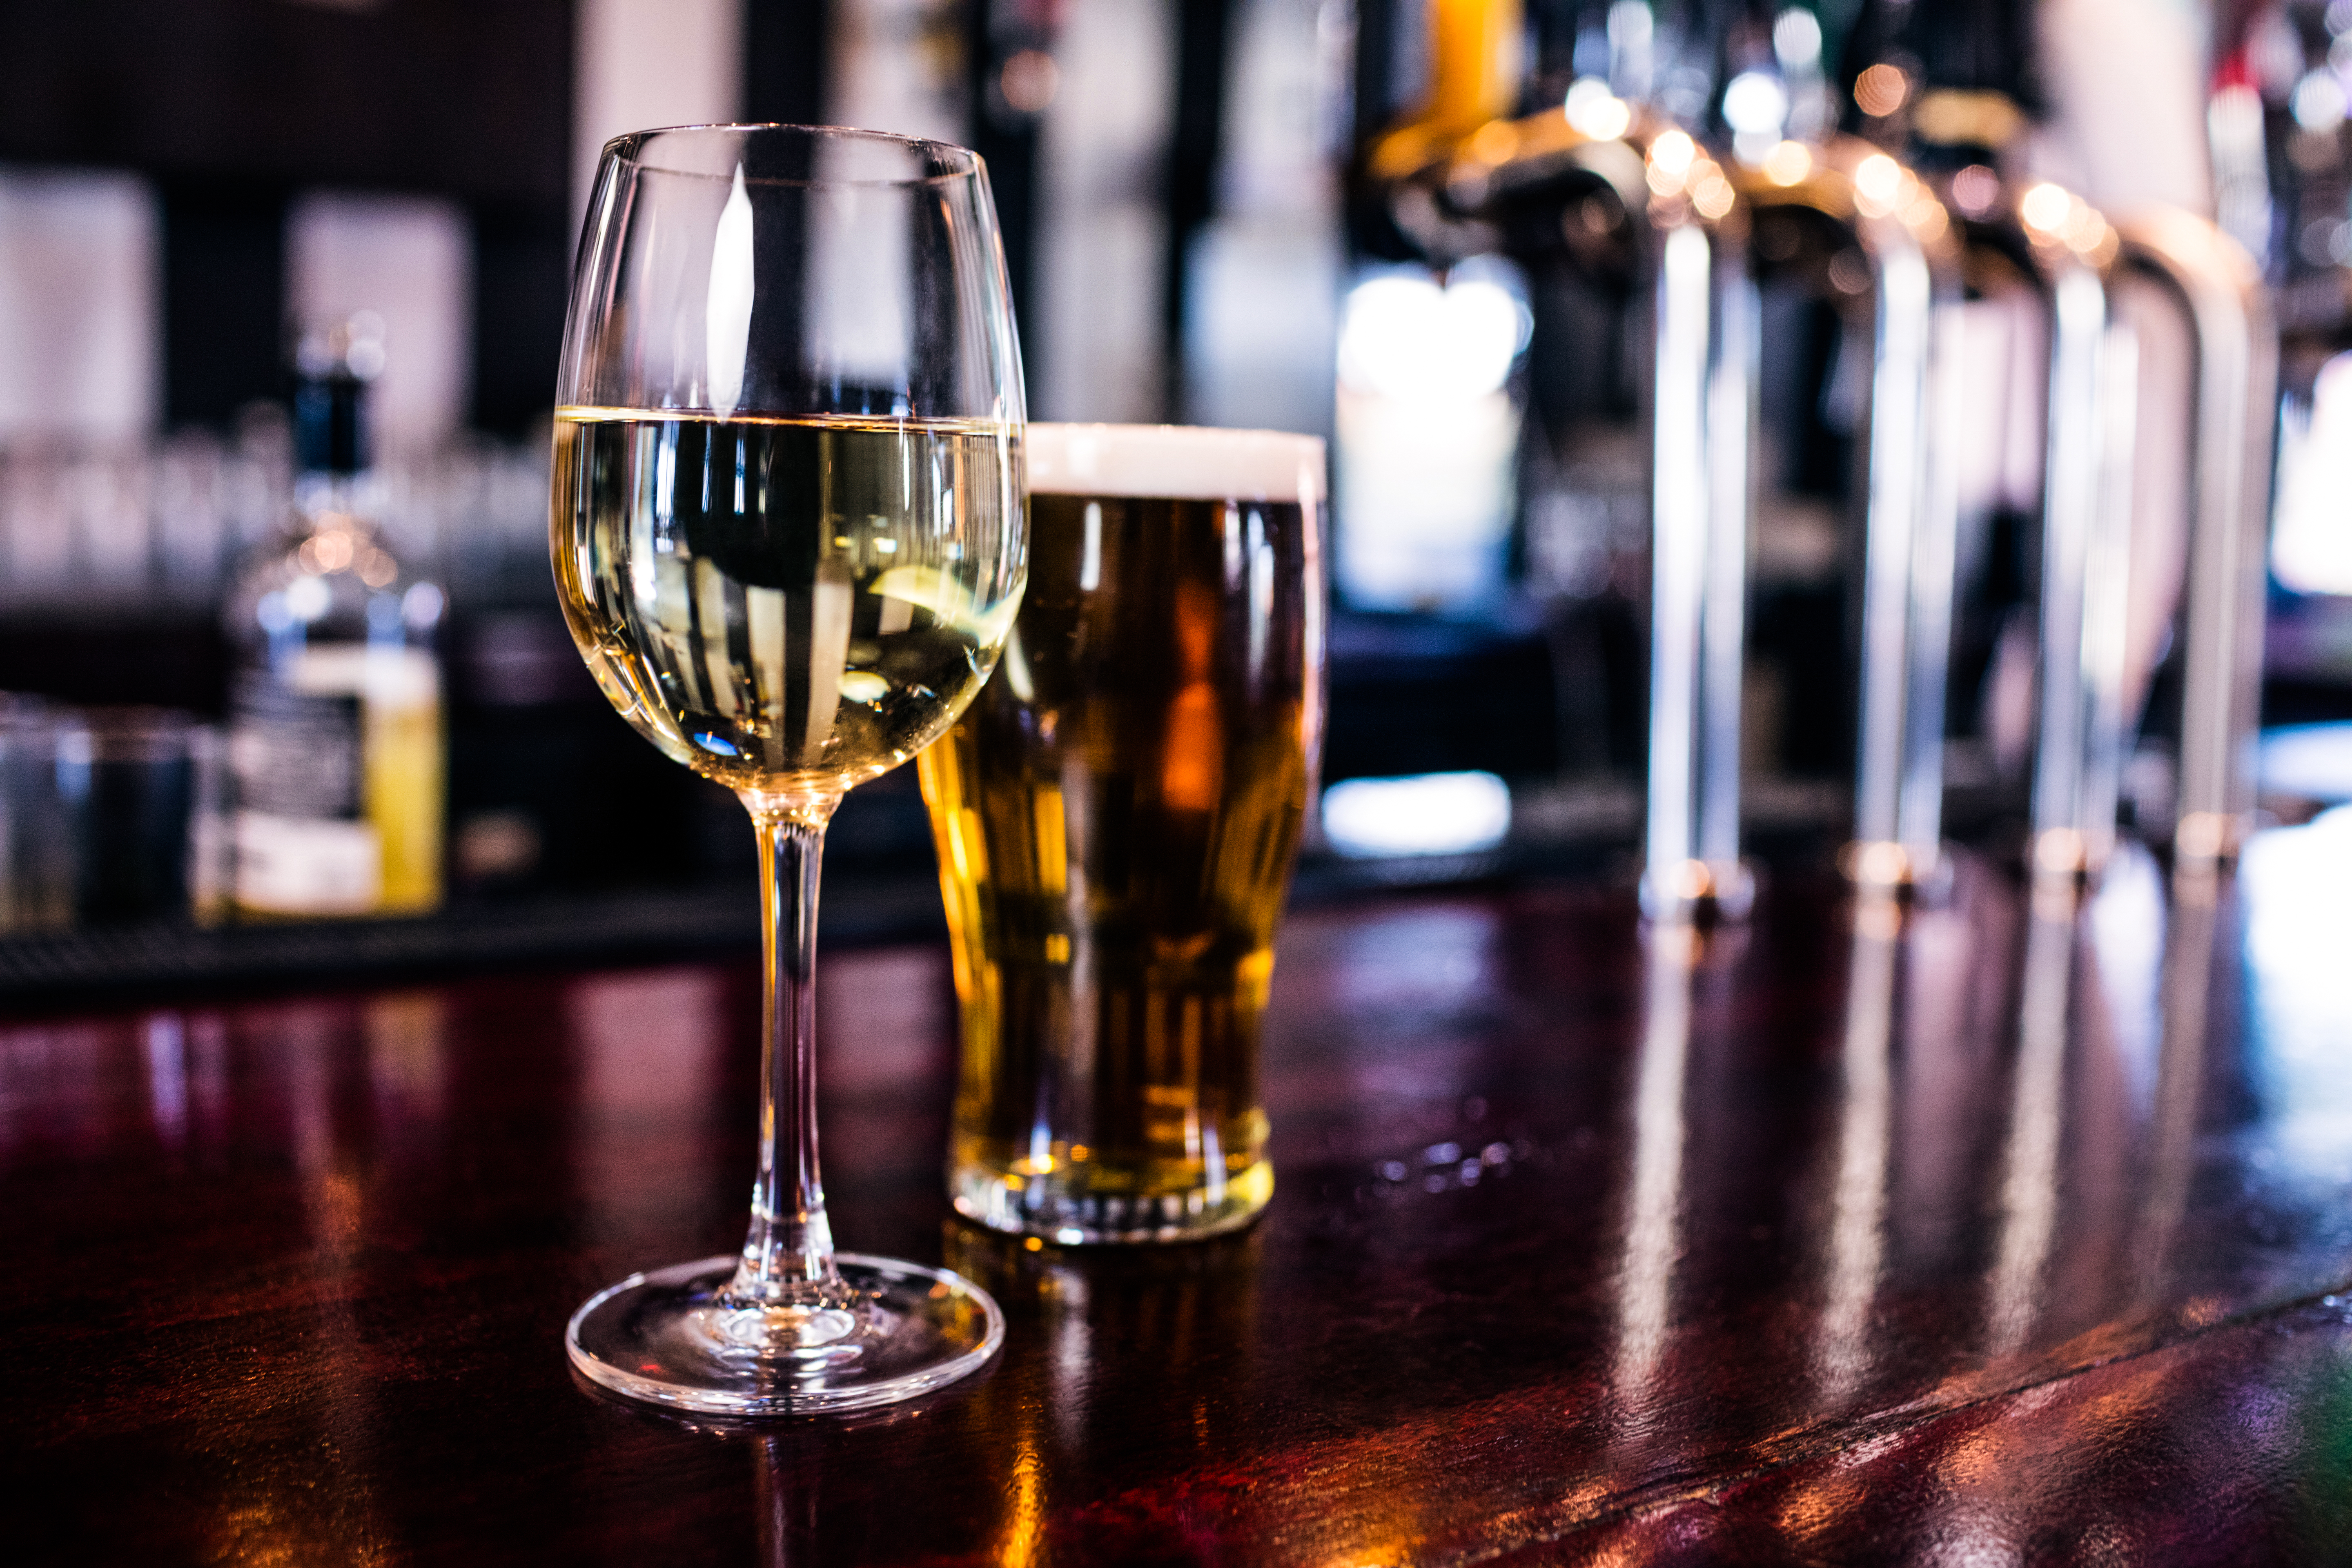 A glass of wine and a glass of beer